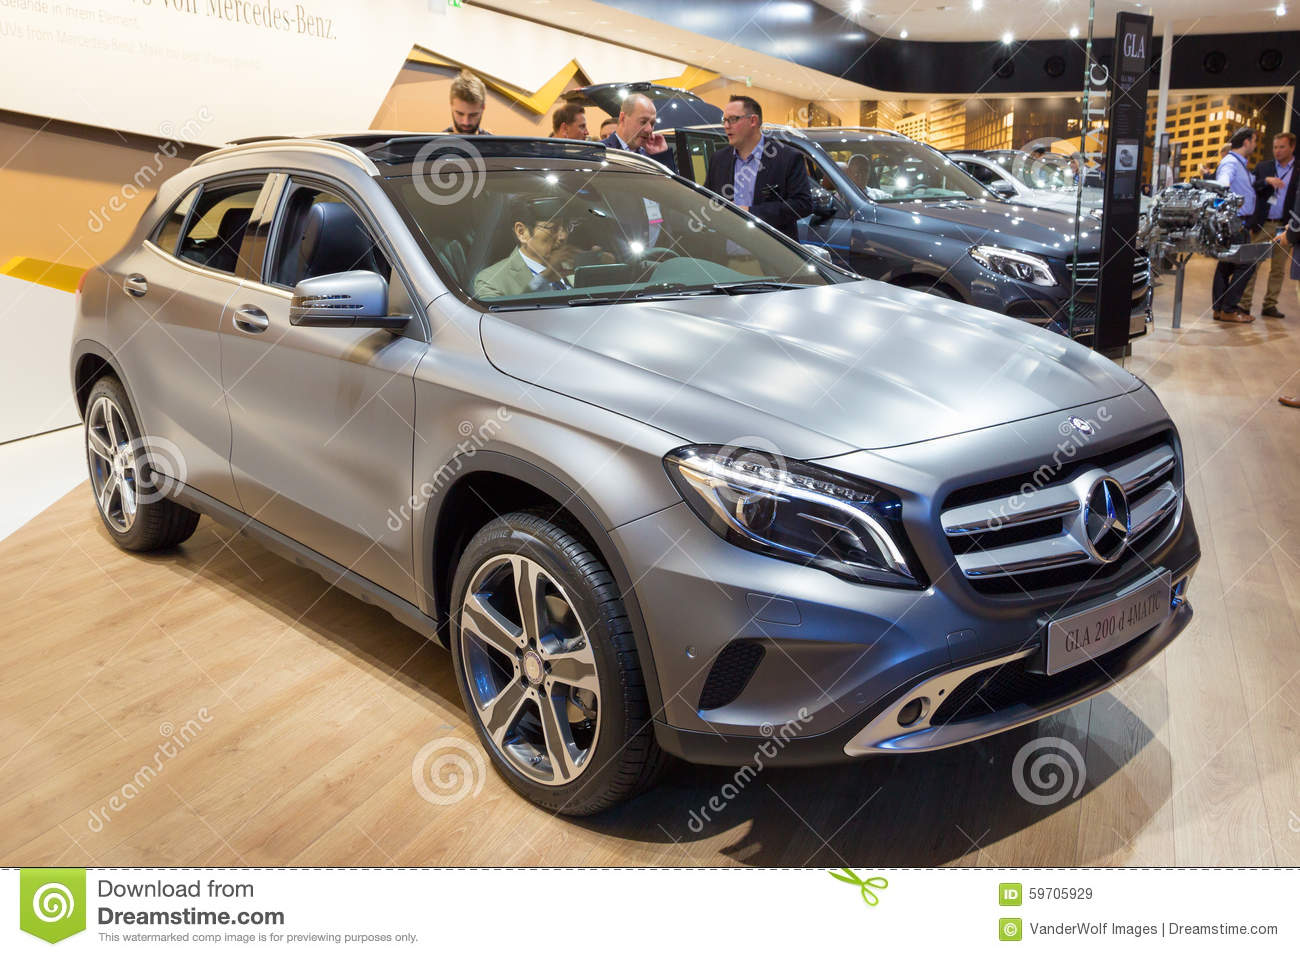 mercedes benz gla 200d 4matic editorial stock image image of benz style 59705929. Black Bedroom Furniture Sets. Home Design Ideas